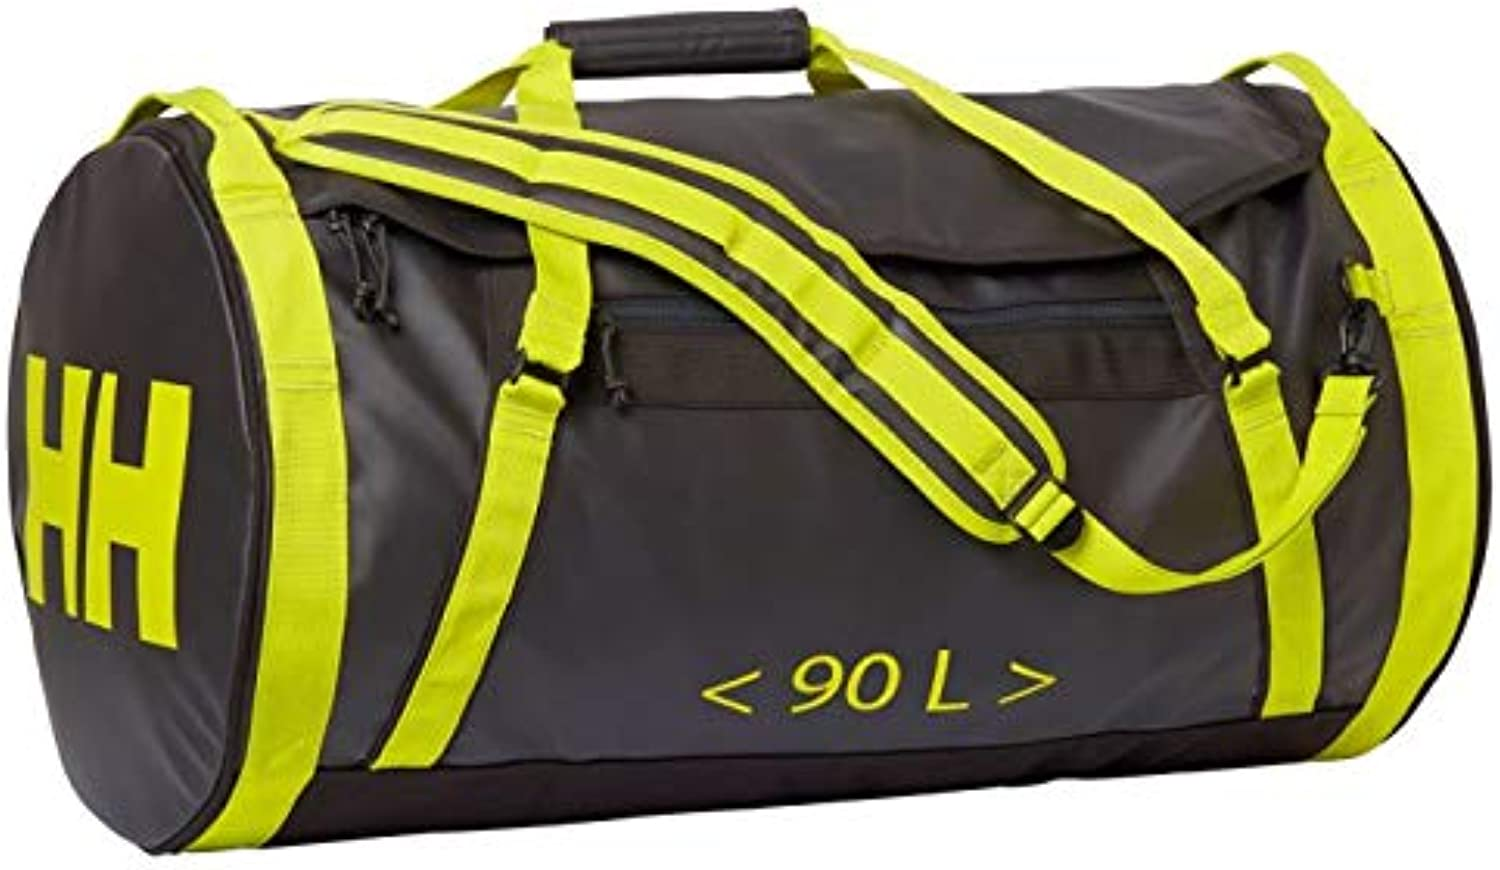 Helly Hansen Duffel Bag 2 90L  60 Centimeters